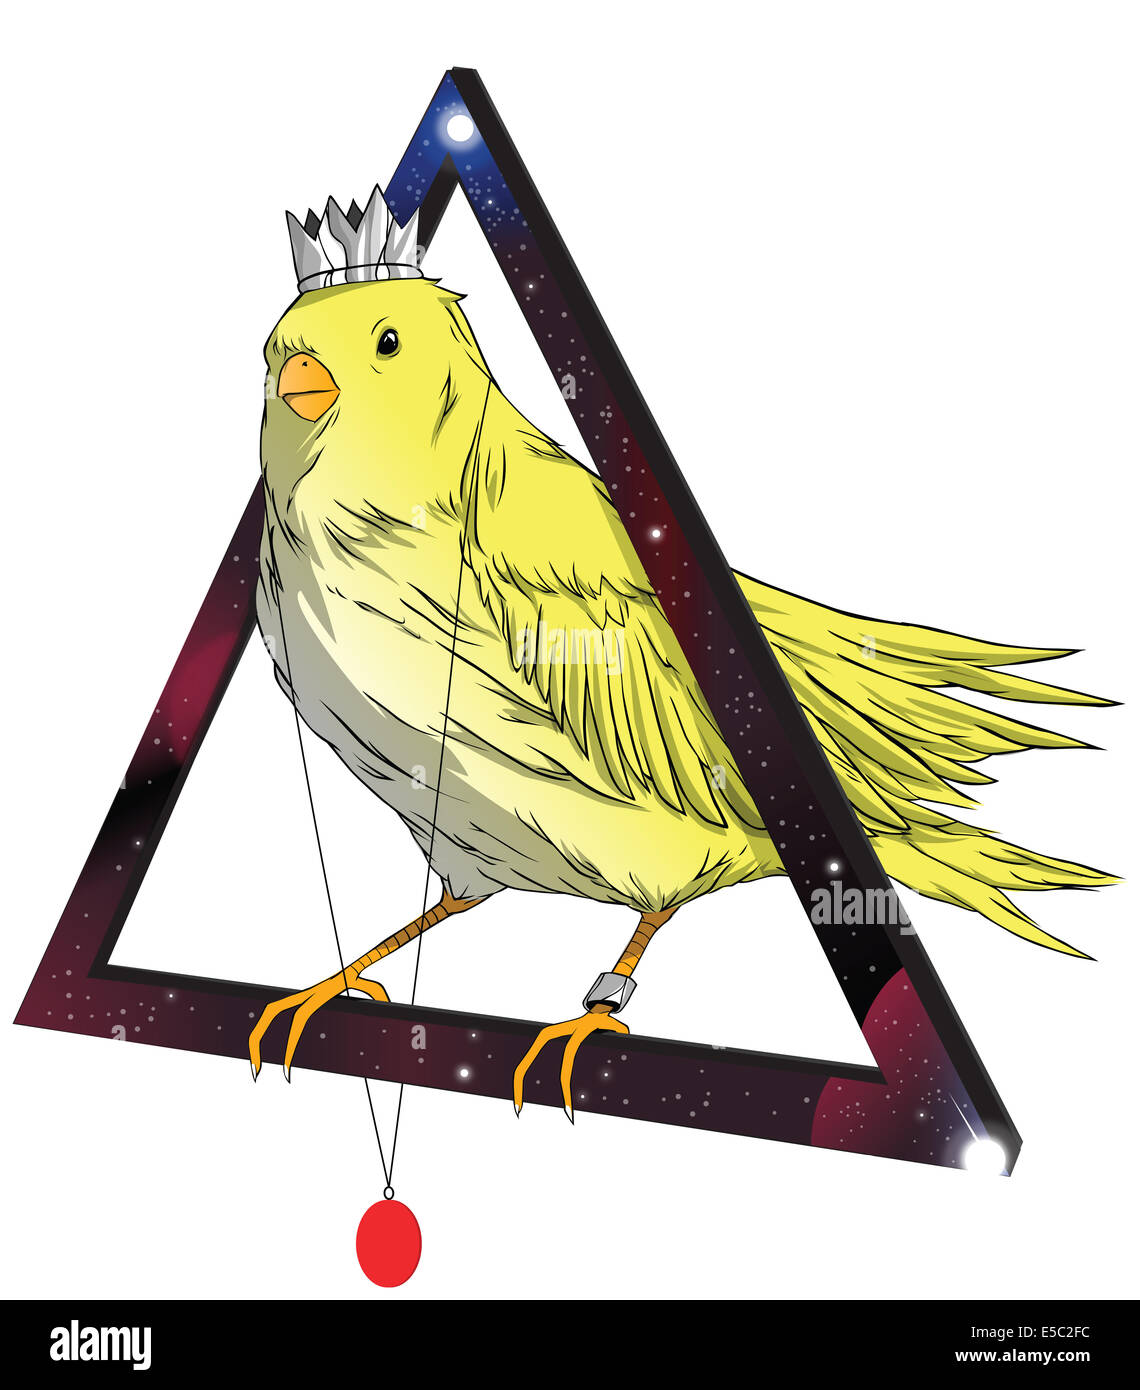 Illustration of bird wearing crown and locket standing on triangle against white background - Stock Image